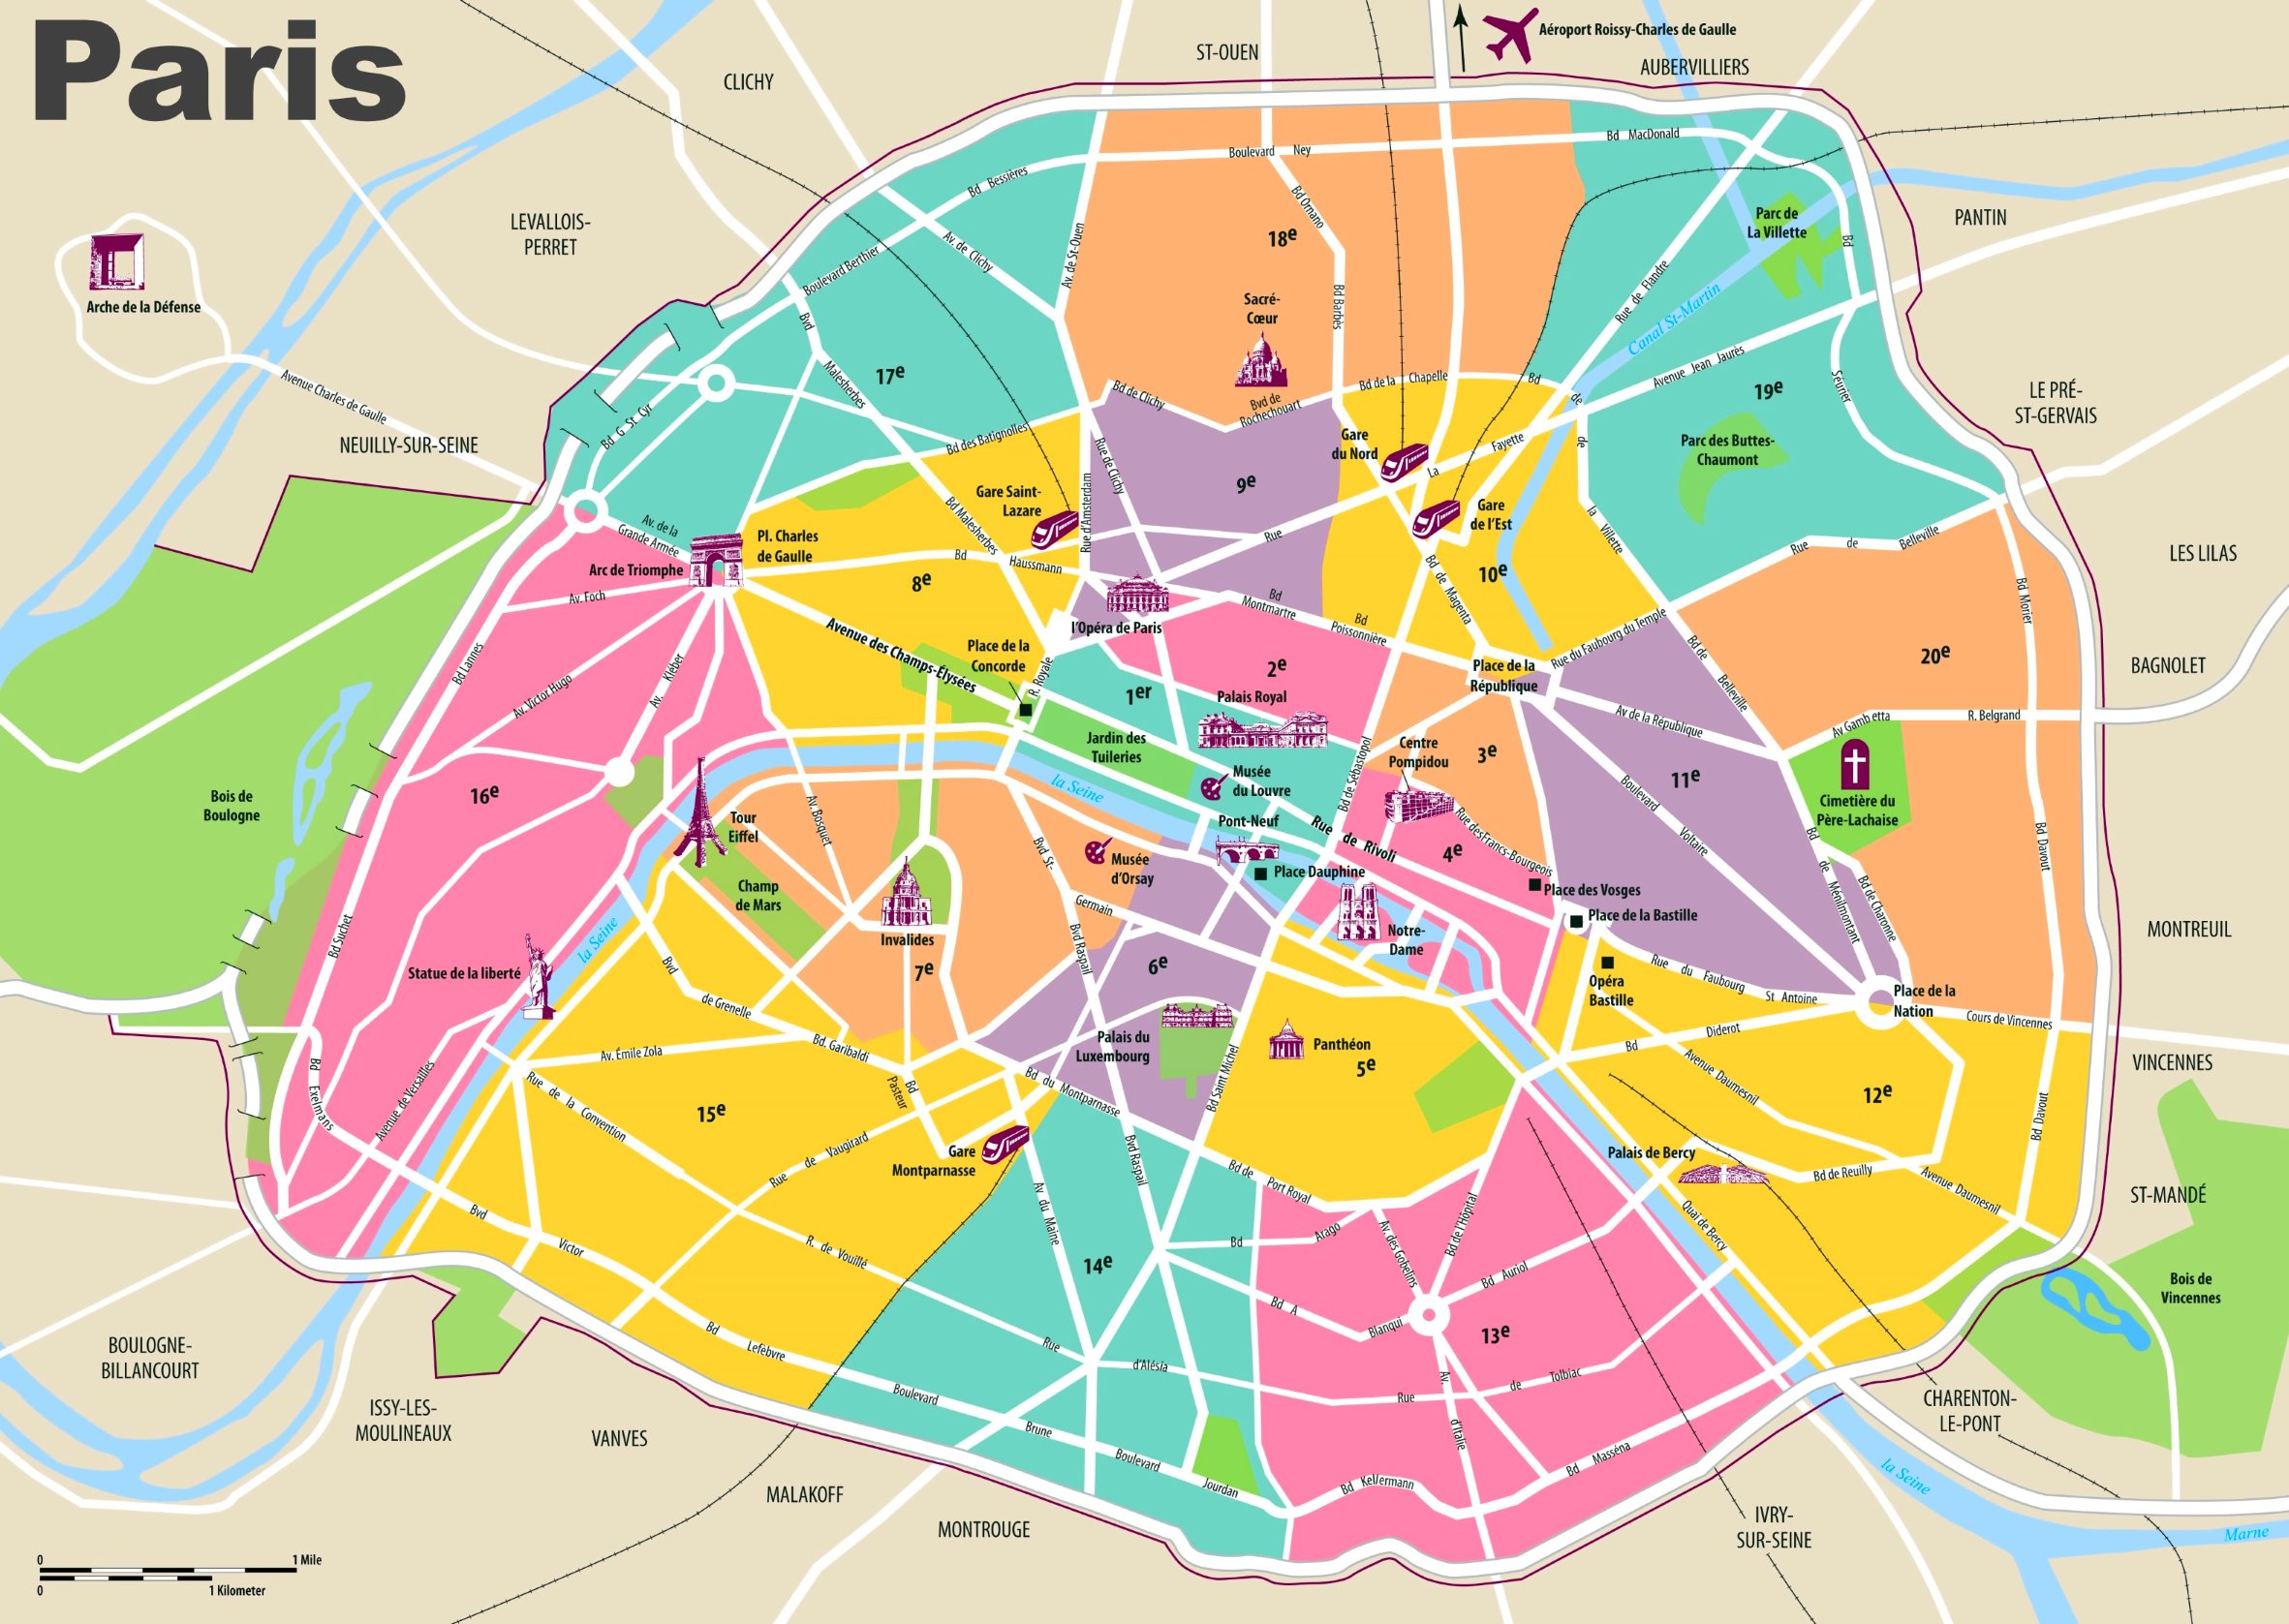 Arrondissement Paris Map Uptowncritters - Paris map neighborhoods